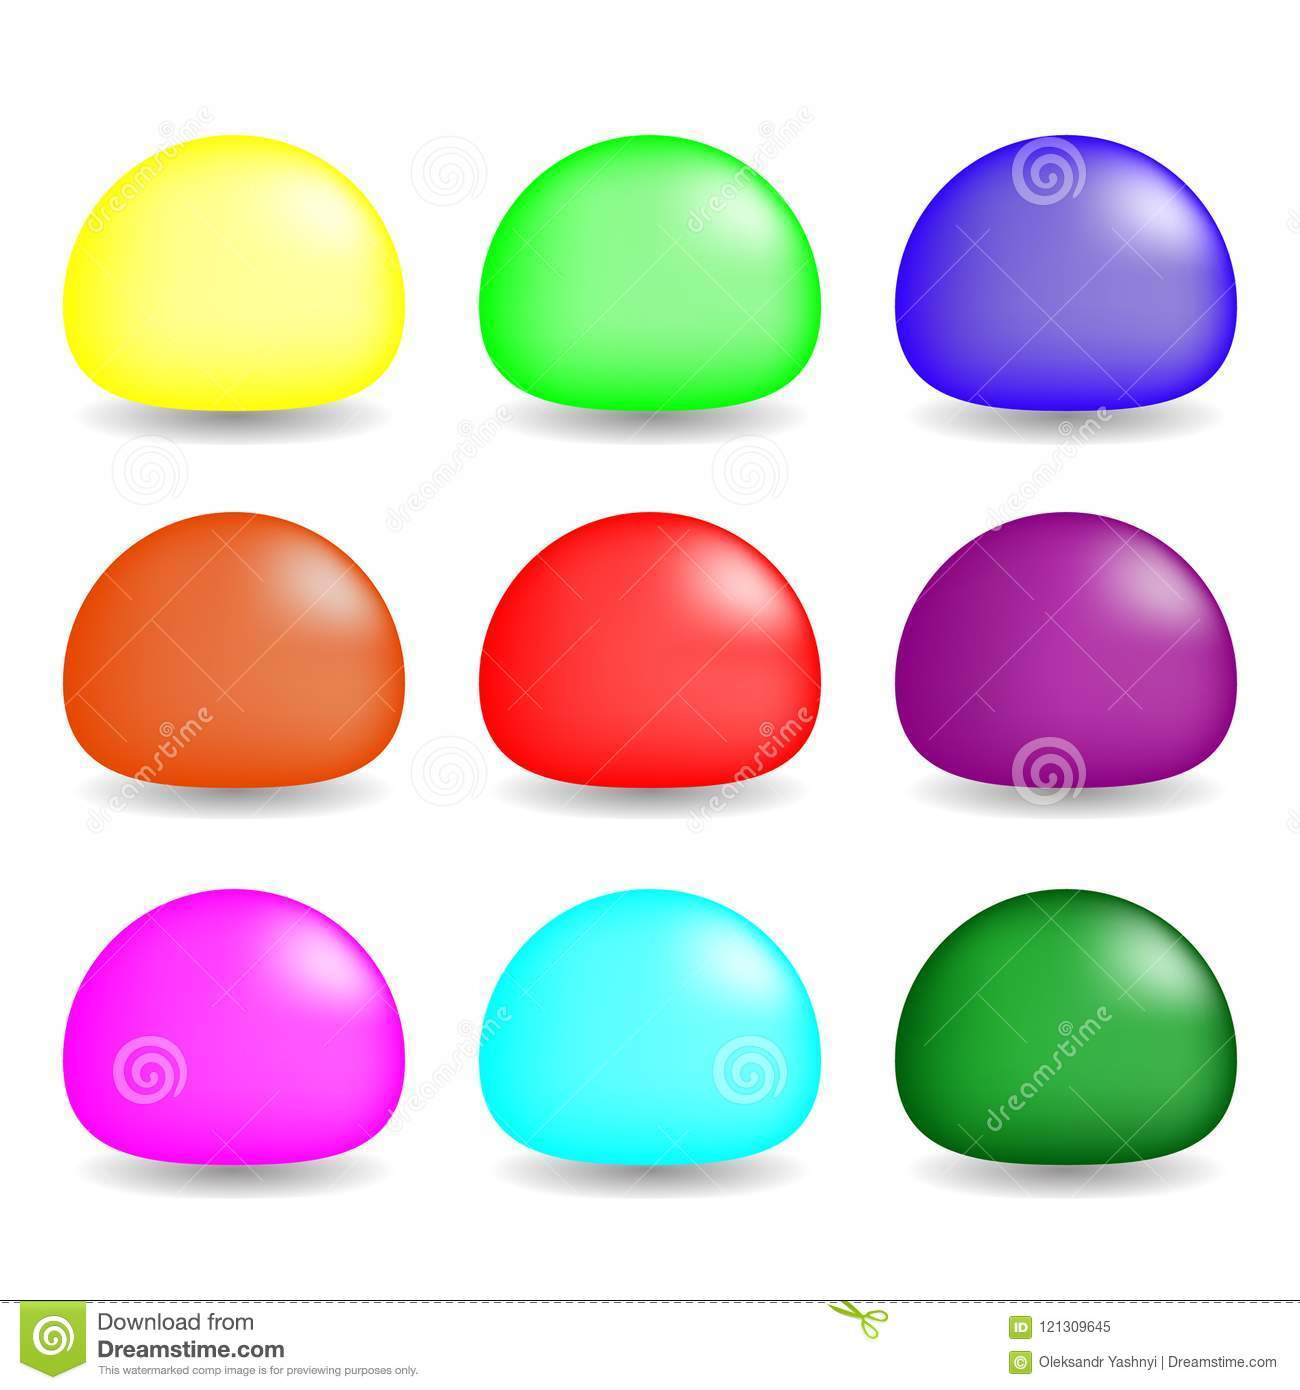 Colorful Slimes Set on White Background. Vector Set for Design, Game. Collection of game characters.